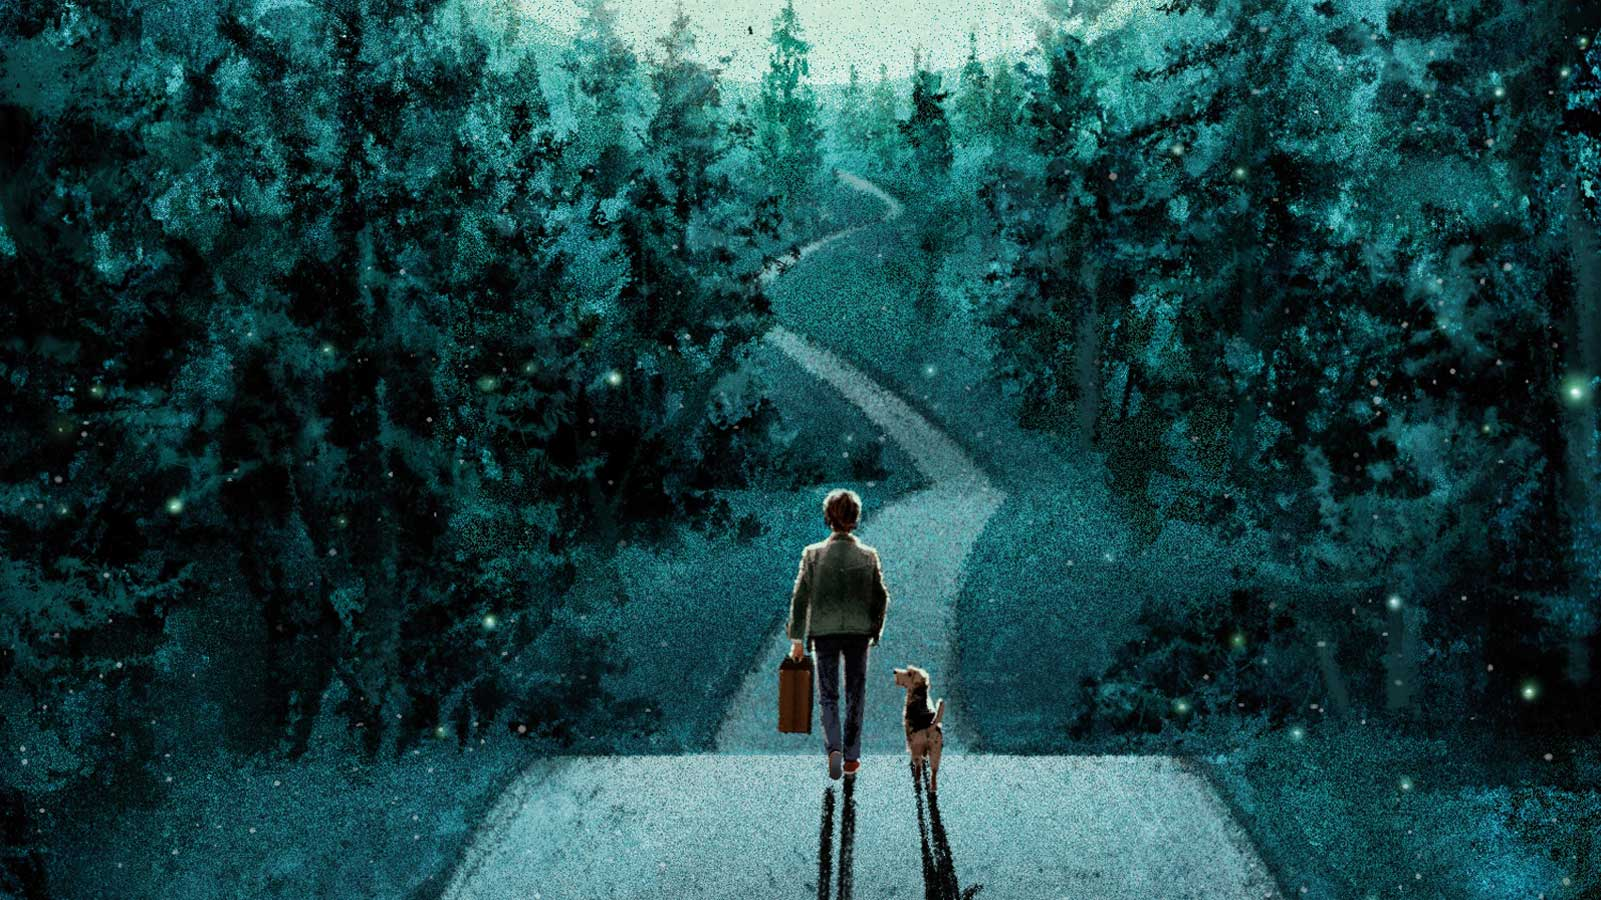 Illustration of a young boy and dog on a road under a starry sky